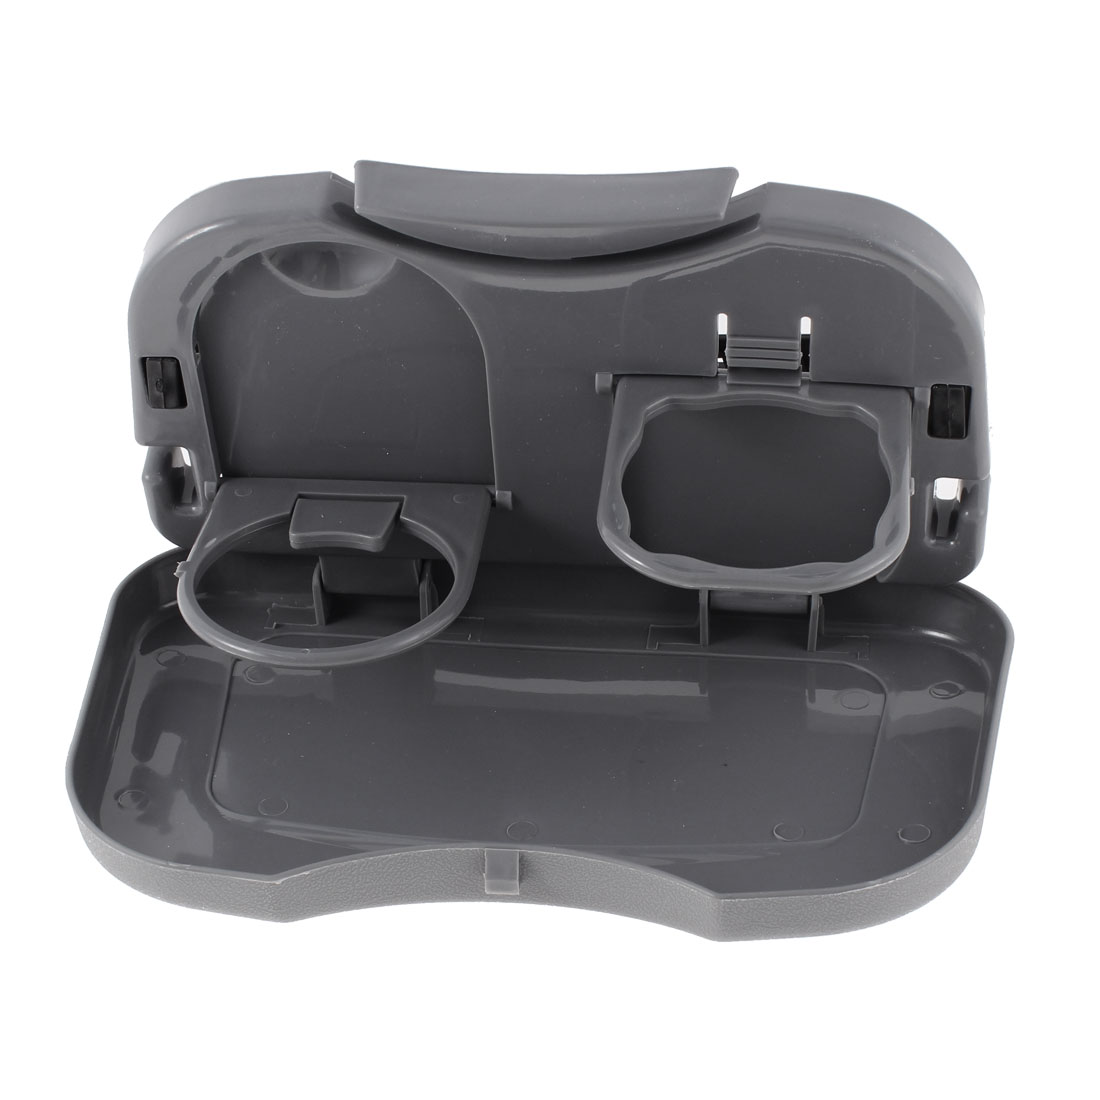 Gray Plastic Foldable Multifunctional Meal Portable Travel Dining Car Snack Tray